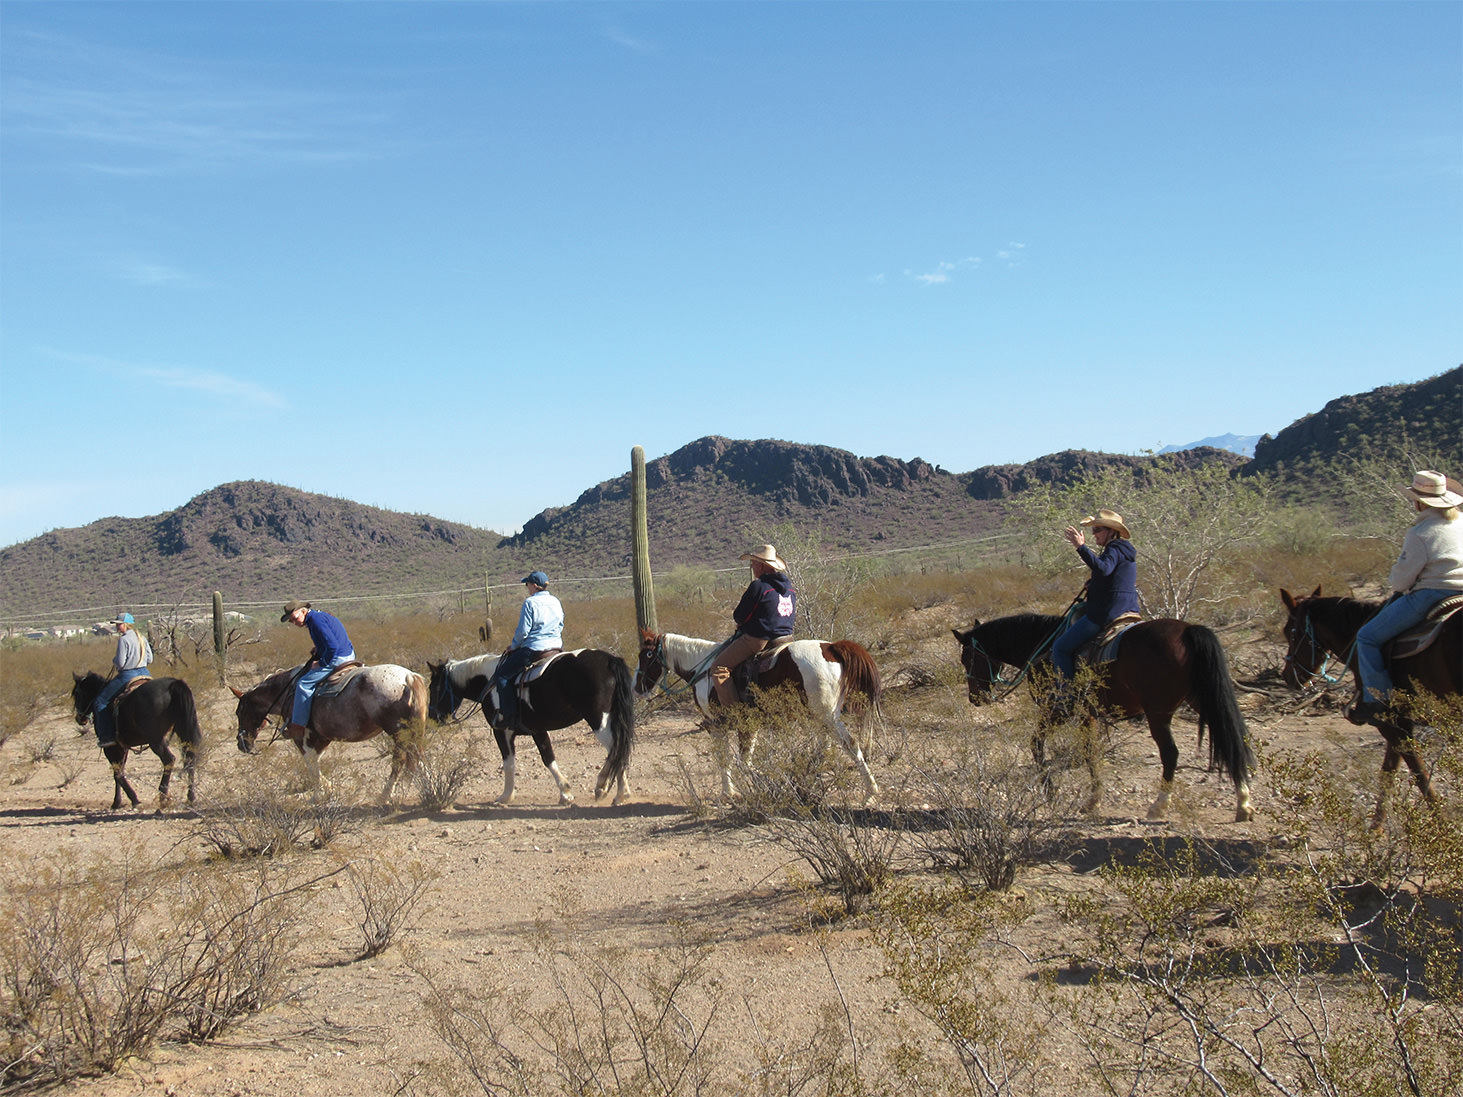 Left to right: Wrangler, Jeff Smith, Nancy Gruca, Rob Densmore, Judy Smith, and Tess Densmore enjoy the trail.